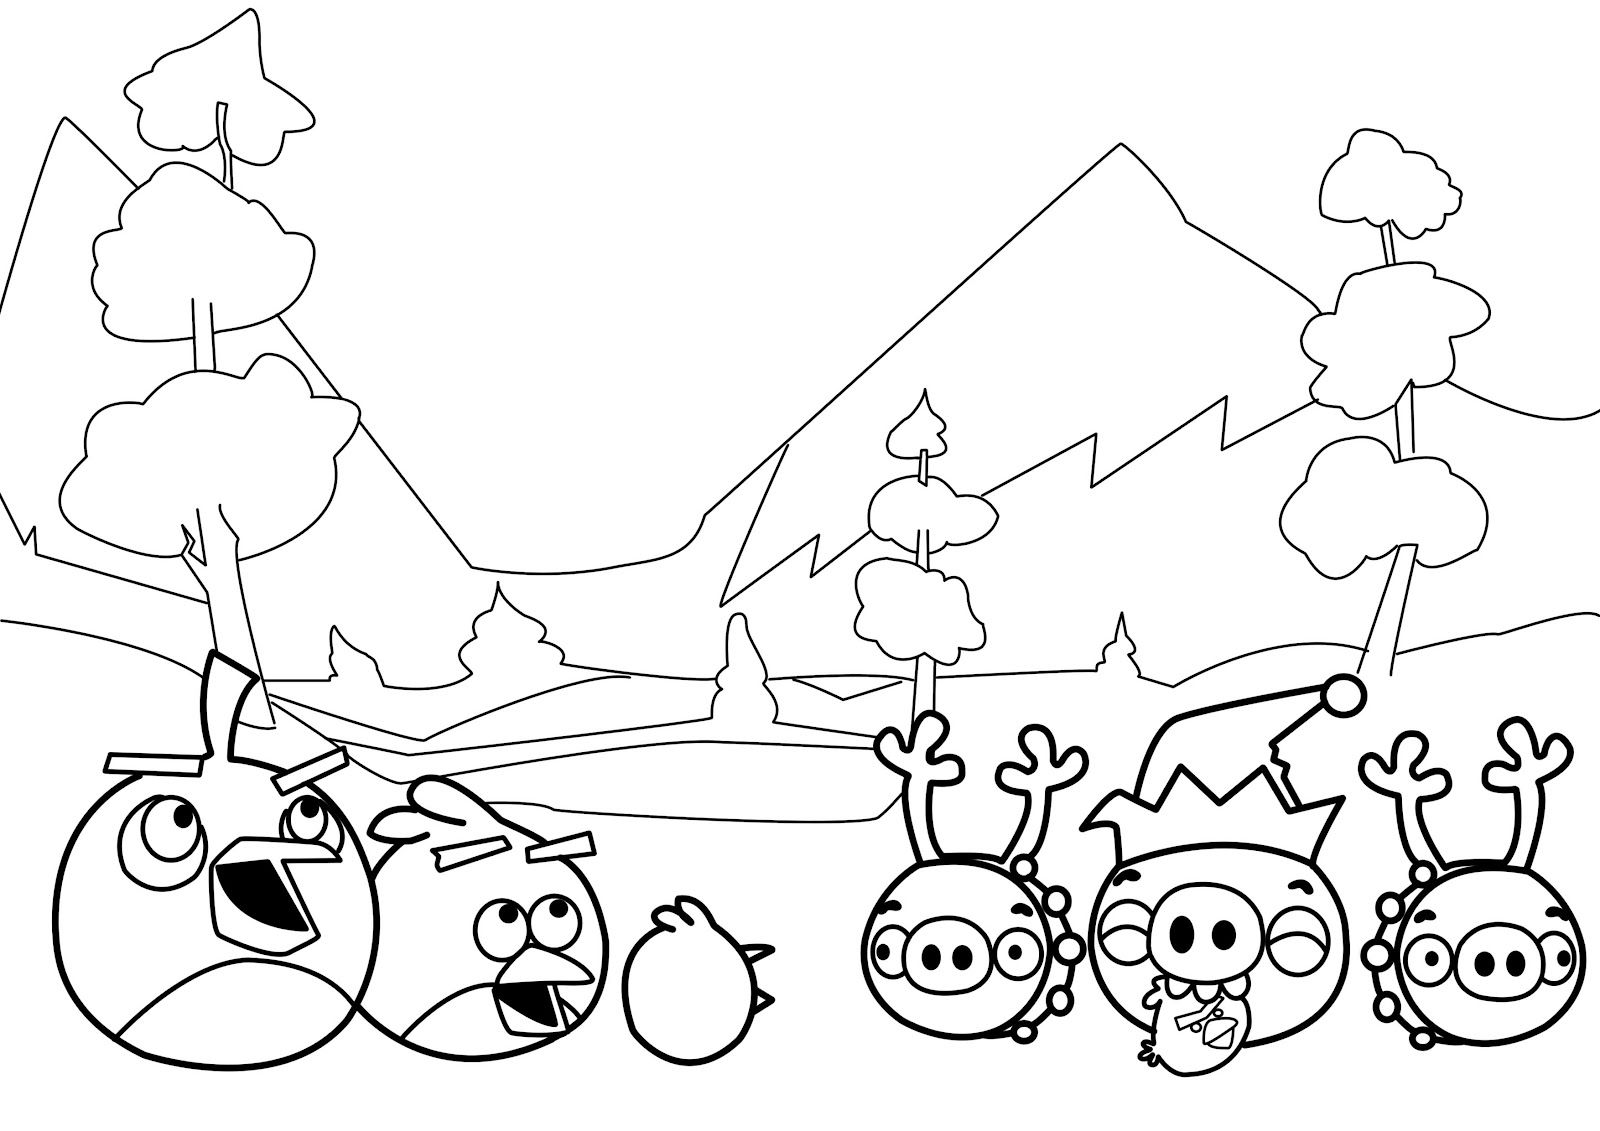 Angry Birds Coloring Pages New Angry Birds Coloring Pages Coloring Page For Kids And Adults Bird Coloring Pages Coloring Books Dinosaur Coloring Pages [ 1131 x 1600 Pixel ]